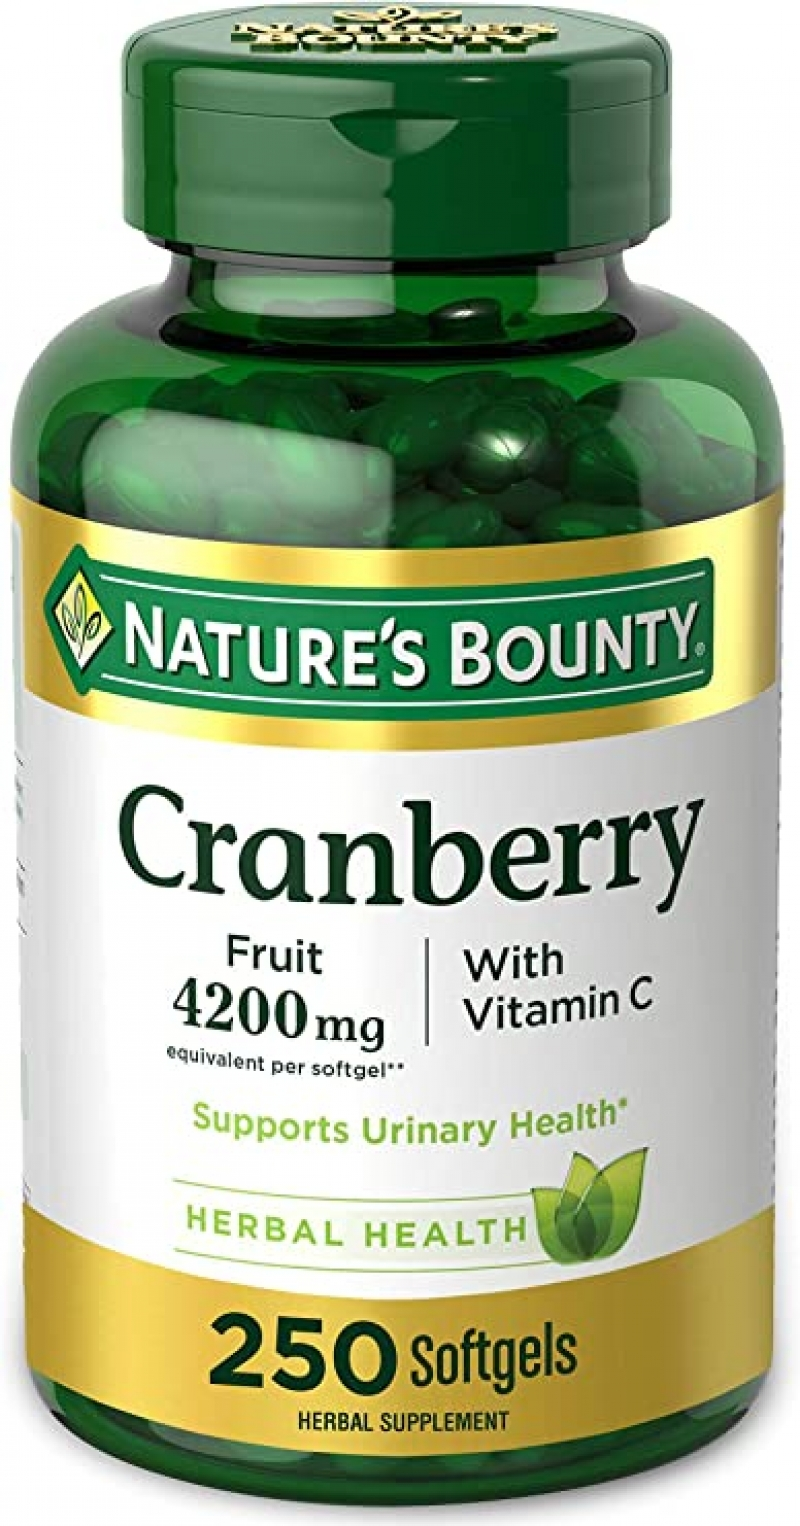 ihocon: Nature's Bounty Cranberry Pills w/ Vitamin C, 250 Softgels 蔓越莓+維他命C